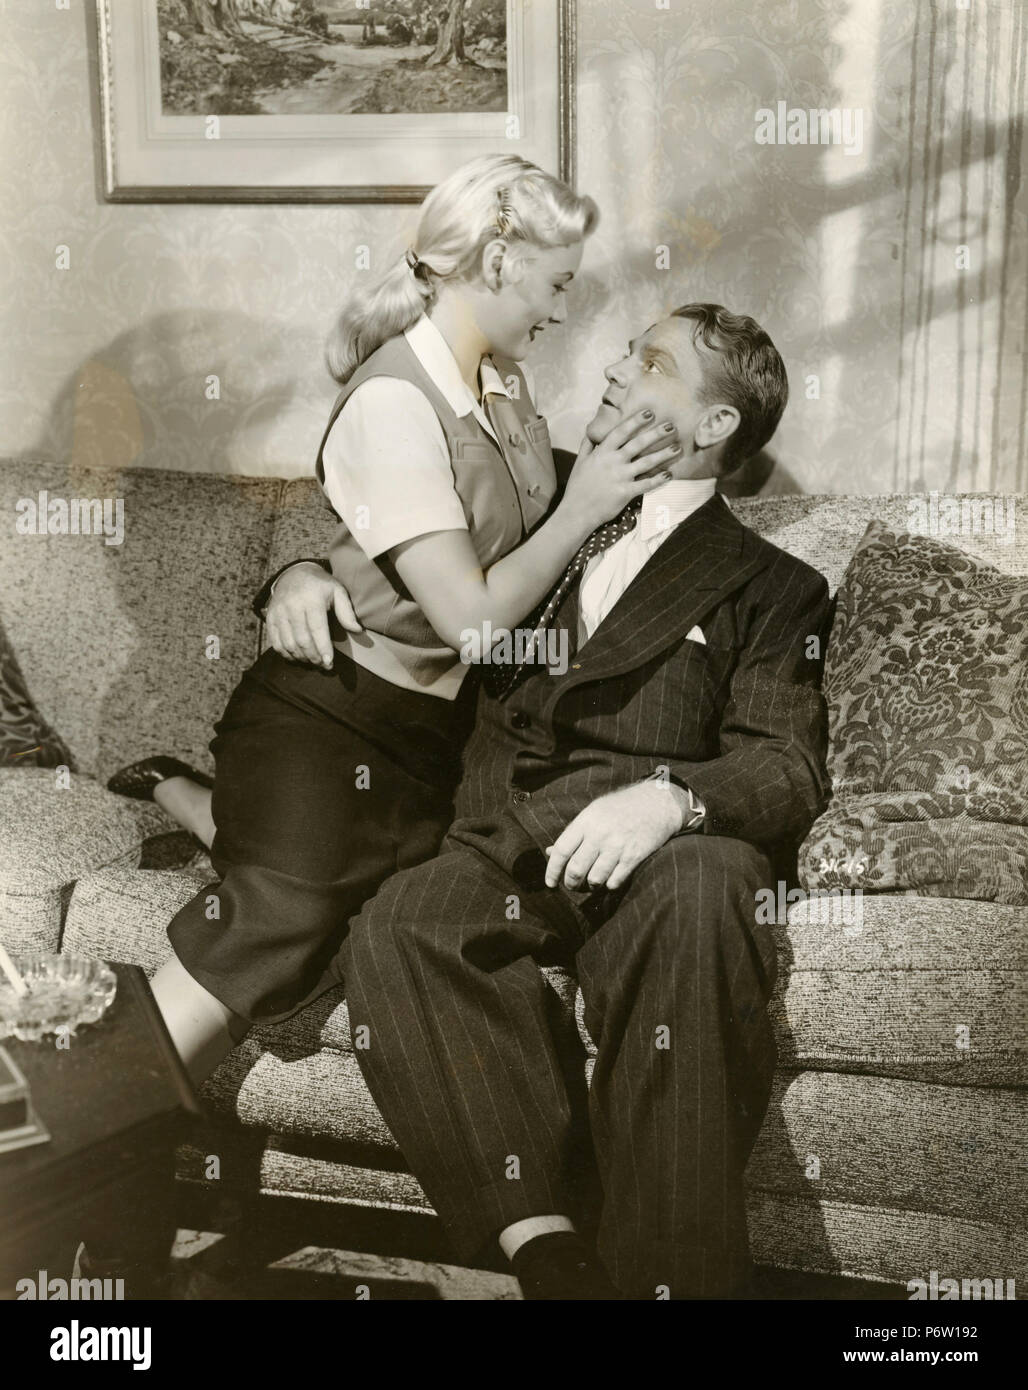 Actors James Cagney and Barbara Payton in the movie Kiss Tomorrow Goobye, 1950 - Stock Image